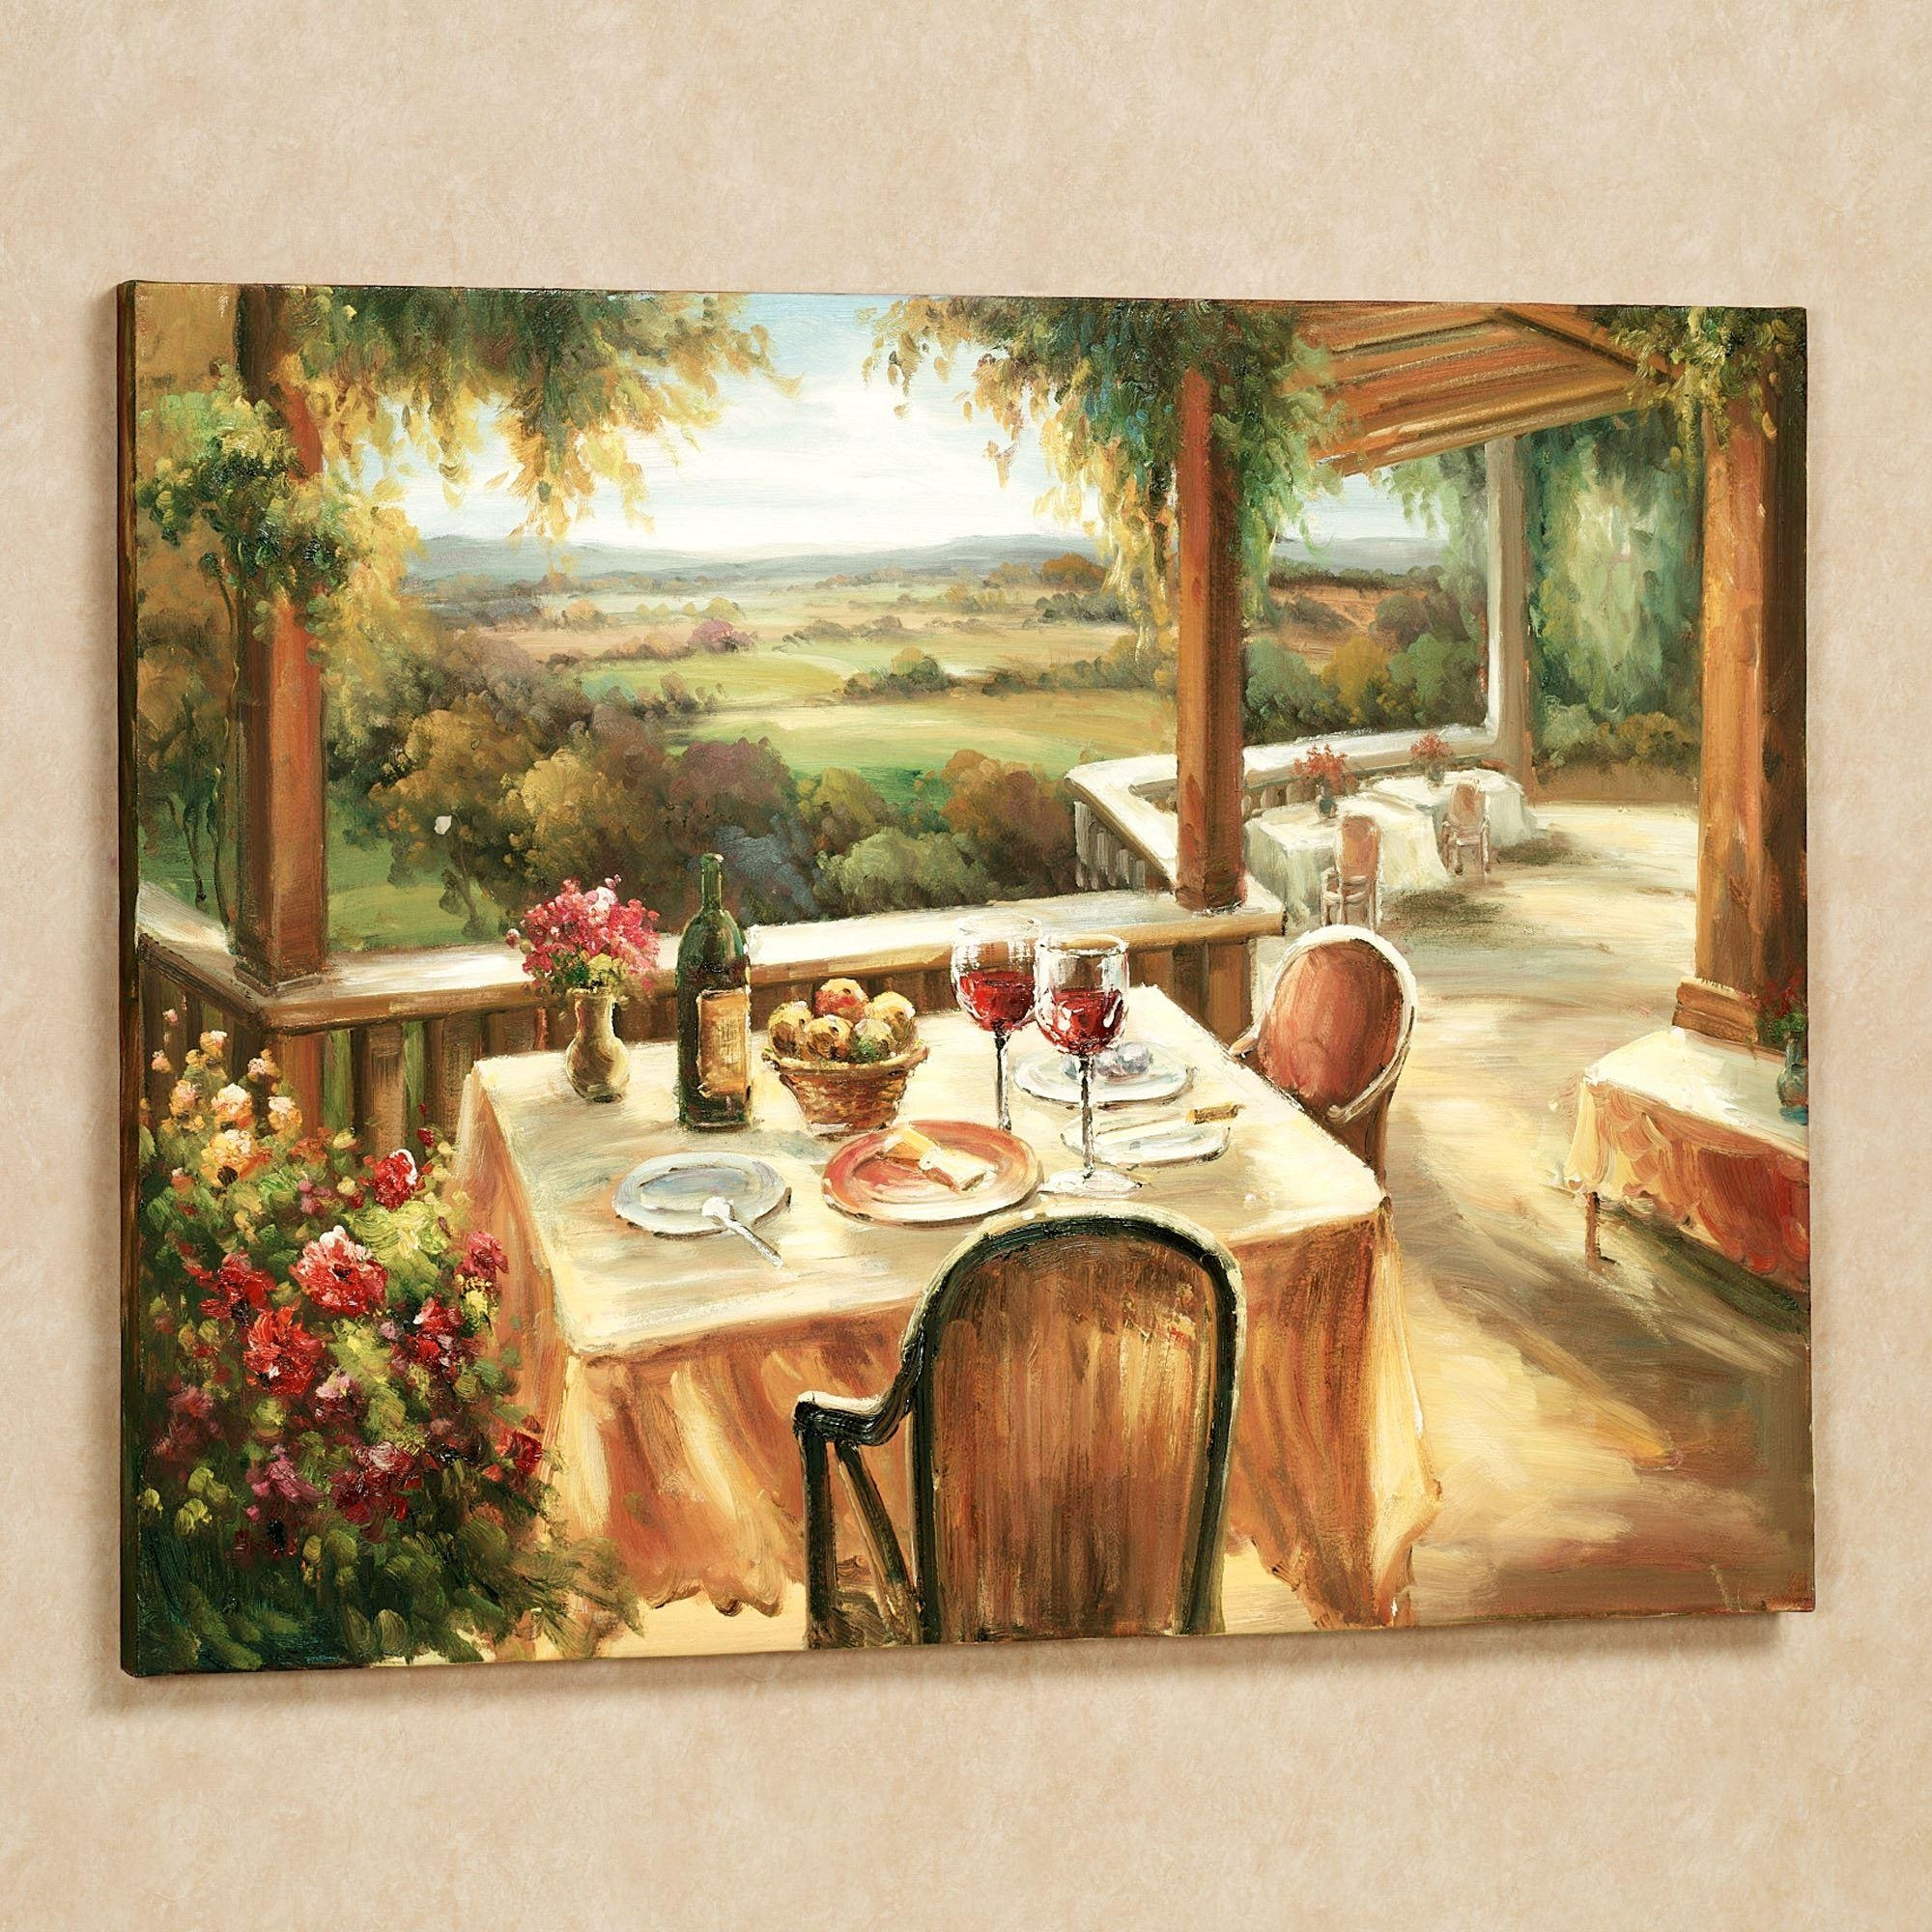 Kitchen : Framed Wall Art Kitchen Prints Living Room Wall Art With Framed Italian Wall Art (View 9 of 20)